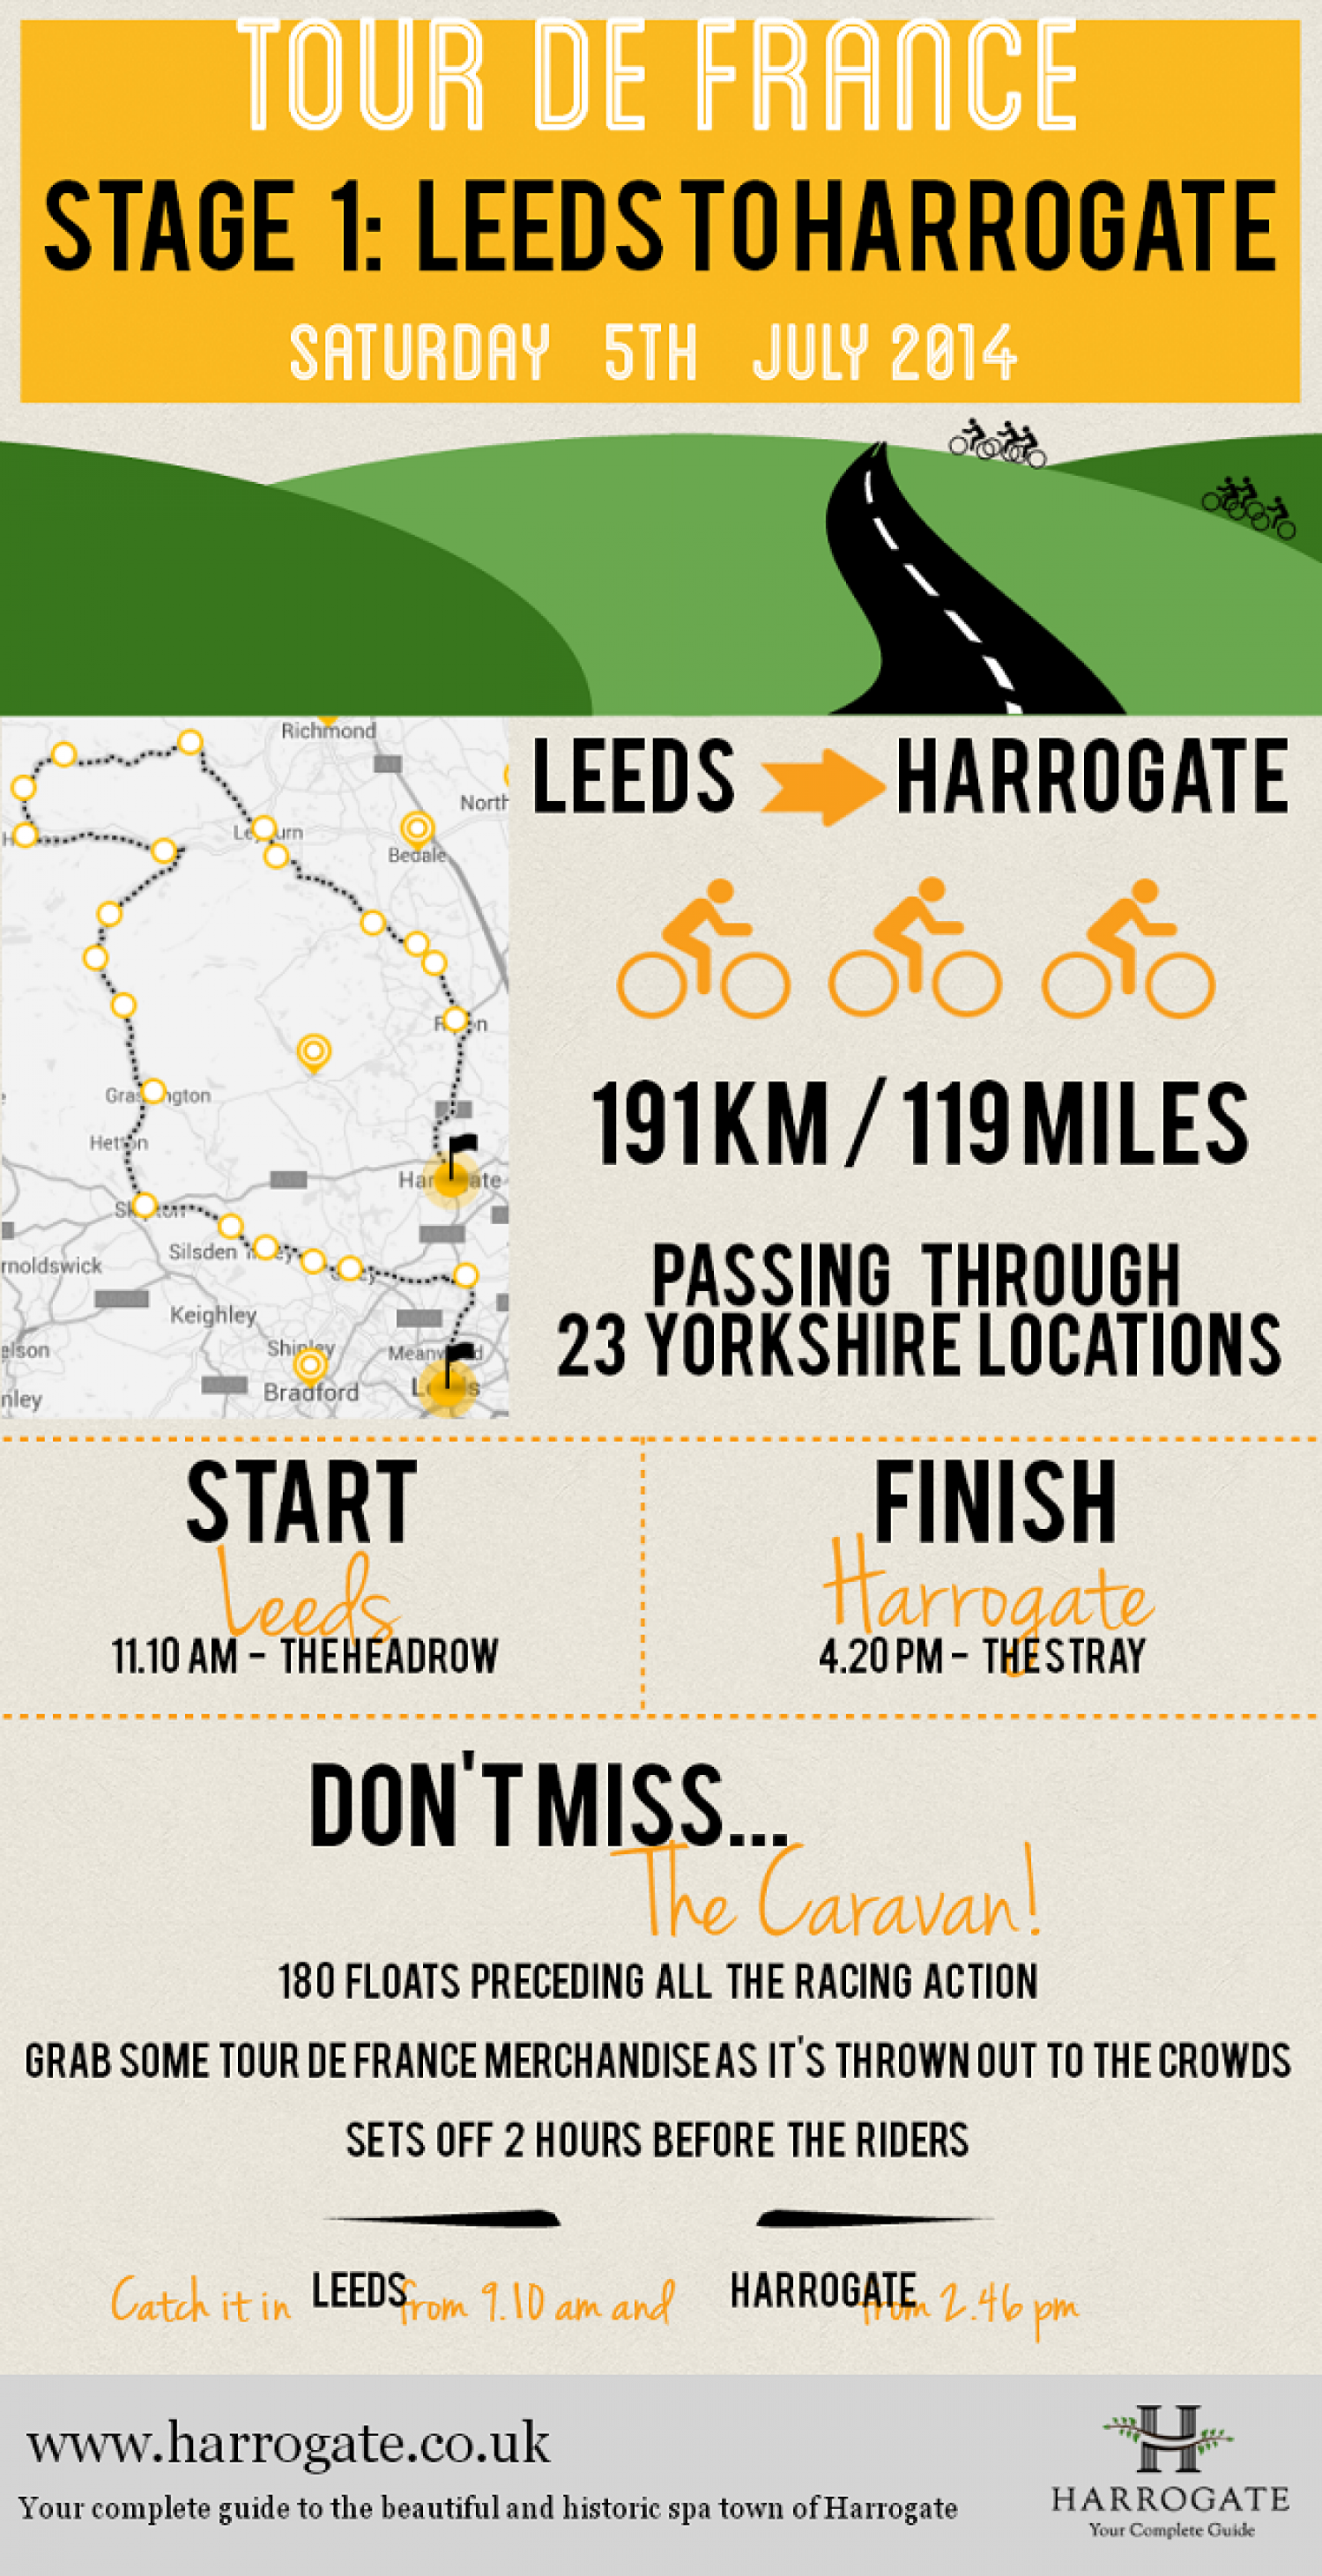 Tour de Yorkshire (Harrogate)  Infographic